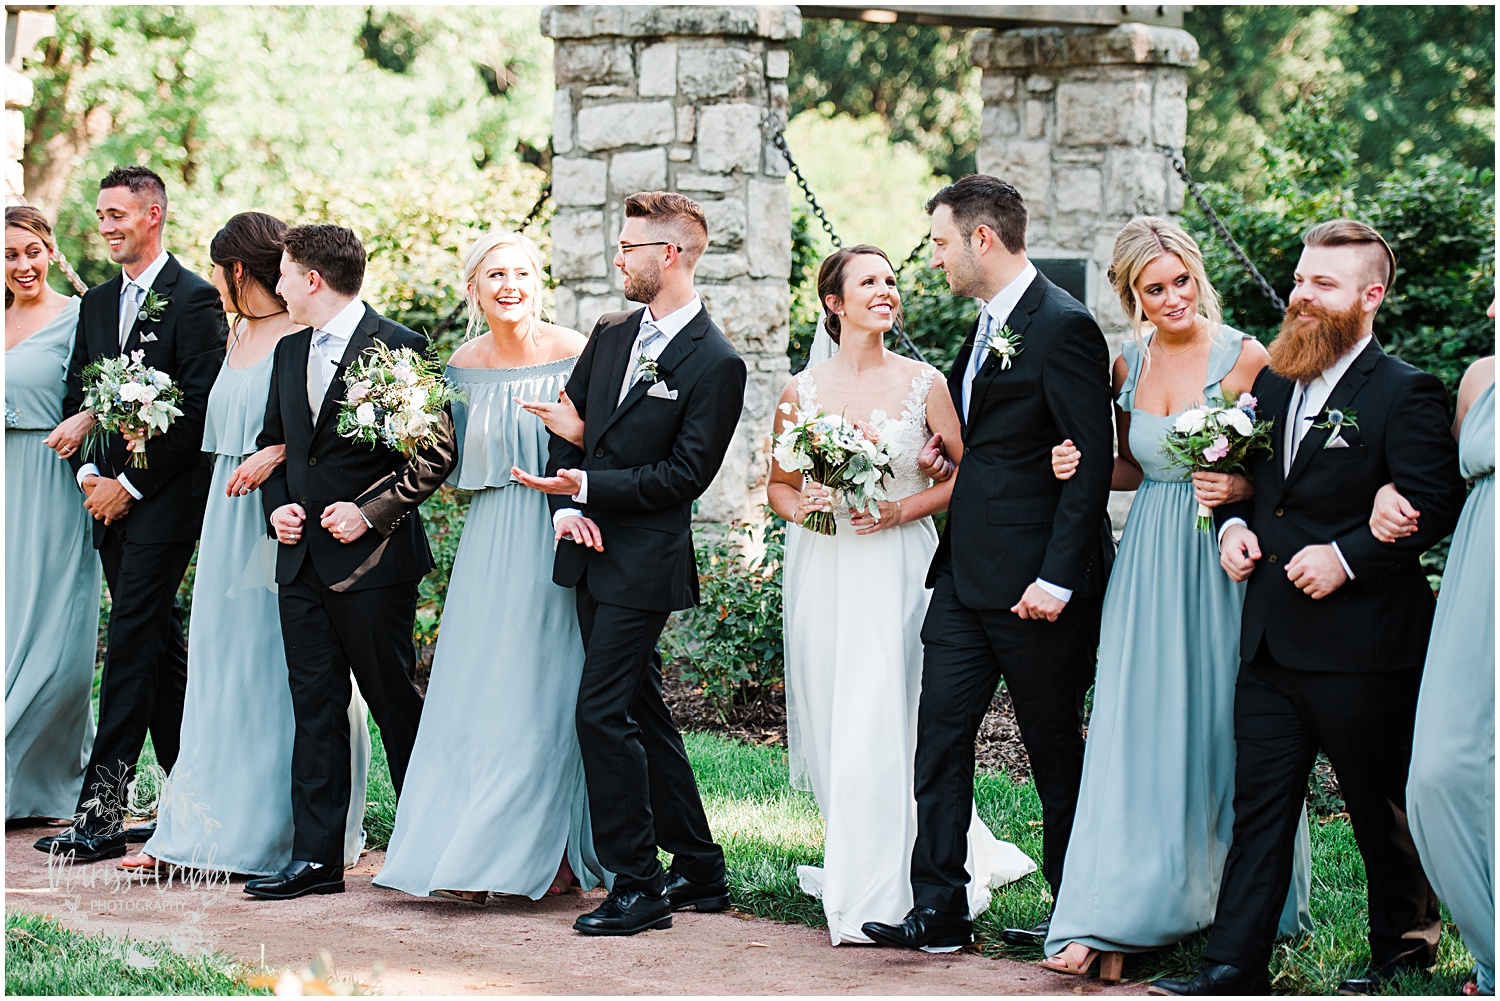 KELLY & MITCH MARRIED BLOG | MARISSA CRIBBS PHOTOGRAPHY | THE EVERLY EVENT SPACE_8863.jpg